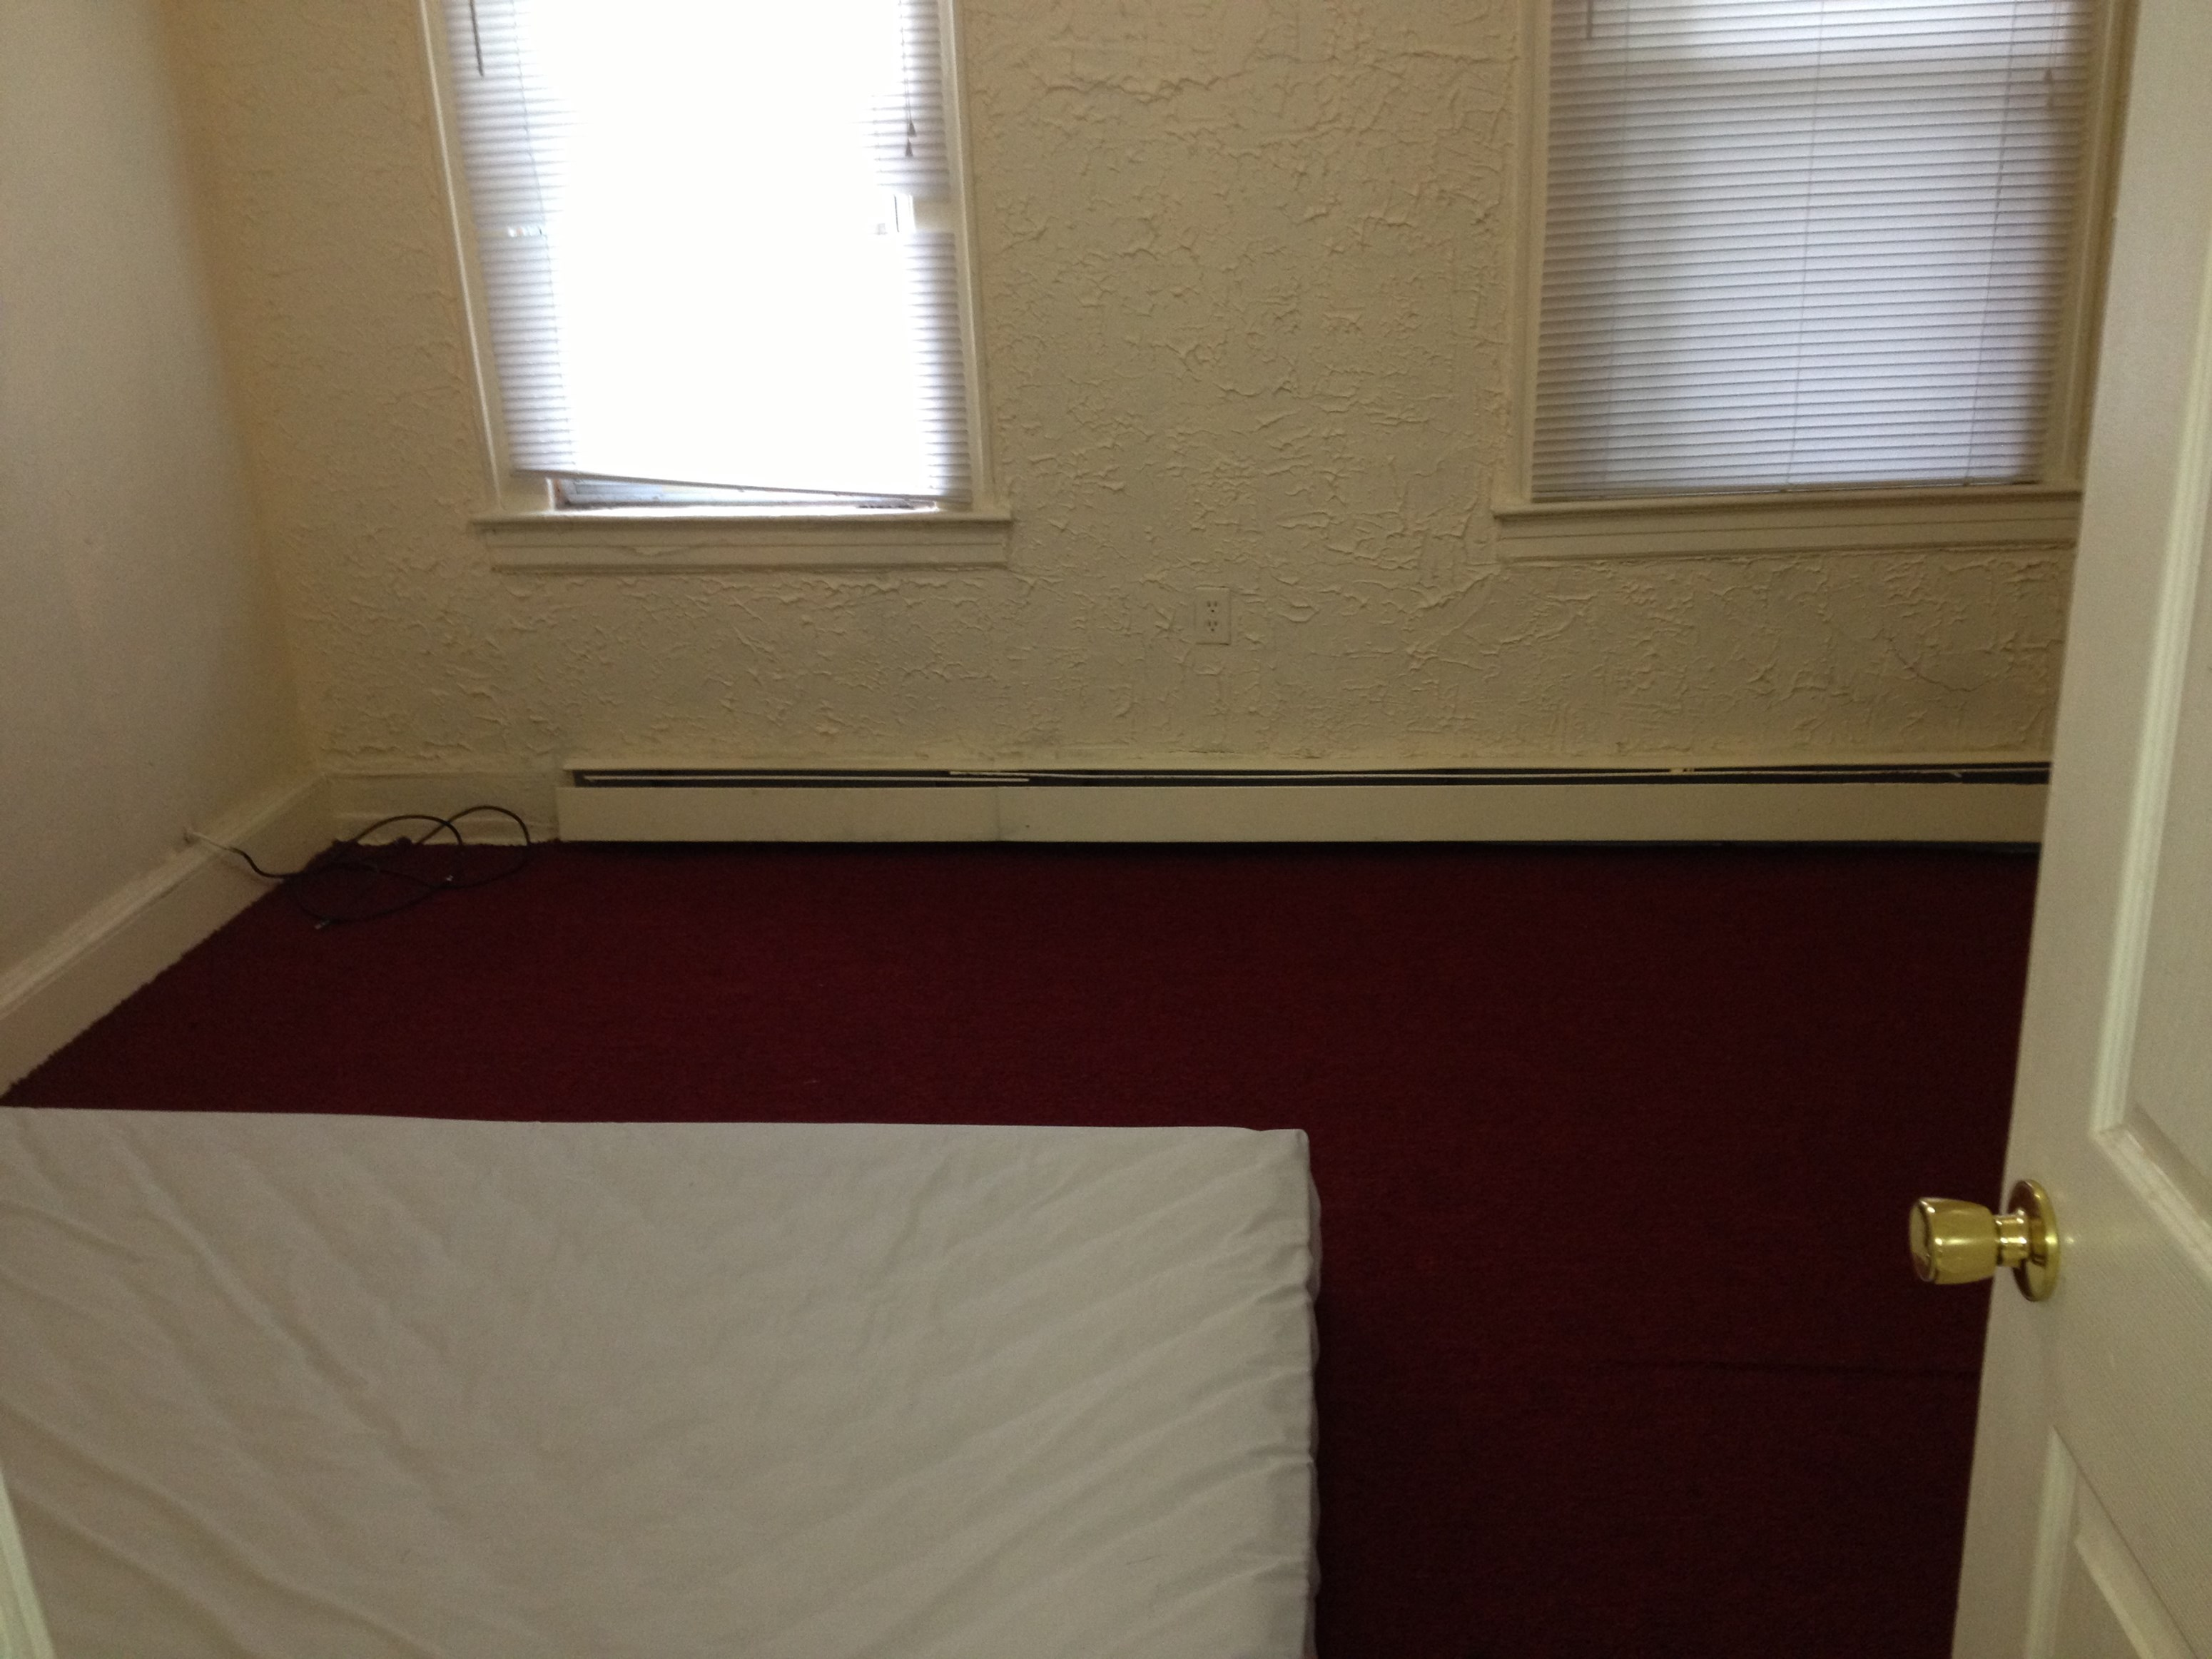 Rooms for Rent Jersey City NJ Apartments House mercial